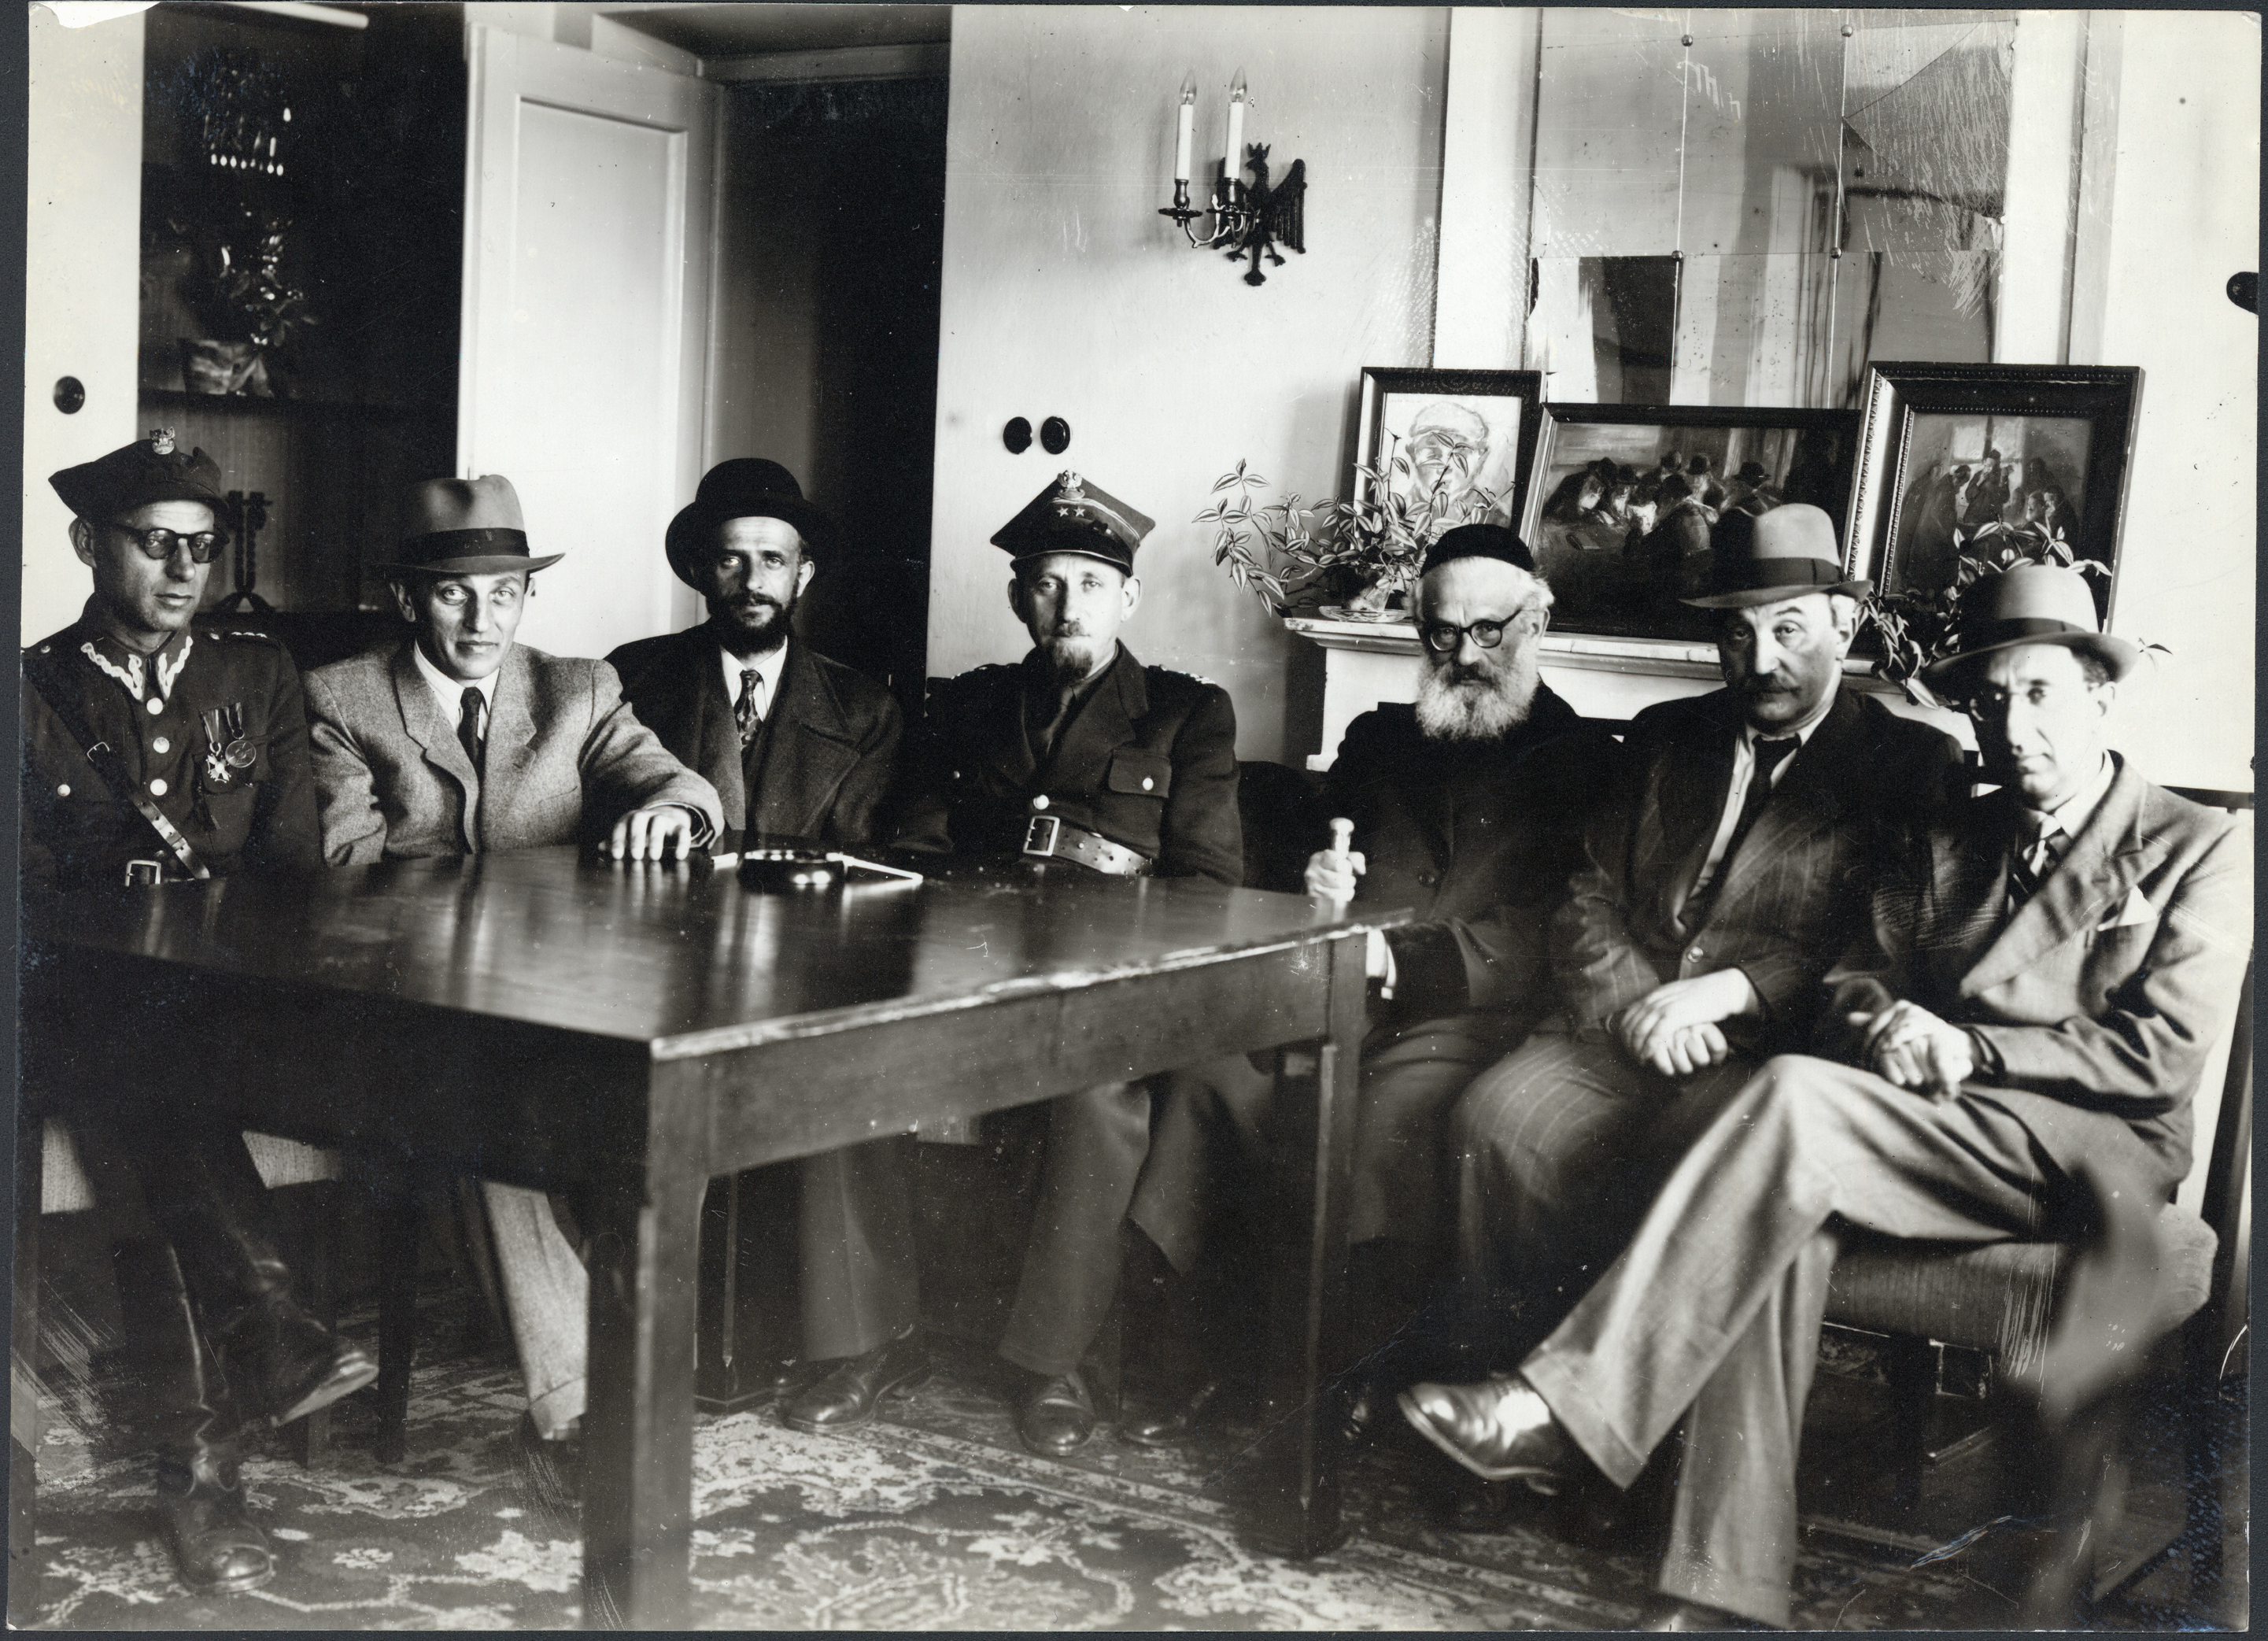 Visit of the Chief Rabbi of Jerusalem to the JDC offices in Warsaw; left to right in photo: Captain Beker, Mizrachi; Mr. Zylberberg, secretary-general of the Central Religious Congregation; Rabbi Efrusi of Warsaw; Colonel Kahane, chief rabbi of the Polish Army; Rabbi Isaac Herzog, chief rabbi of Jerusalem; Mr. Atbor, president of the Jewish Religious Congregation in Lodz; and Joseph Gitler-Barski; general secretary of the JDC office in Warsaw; c. 1946.